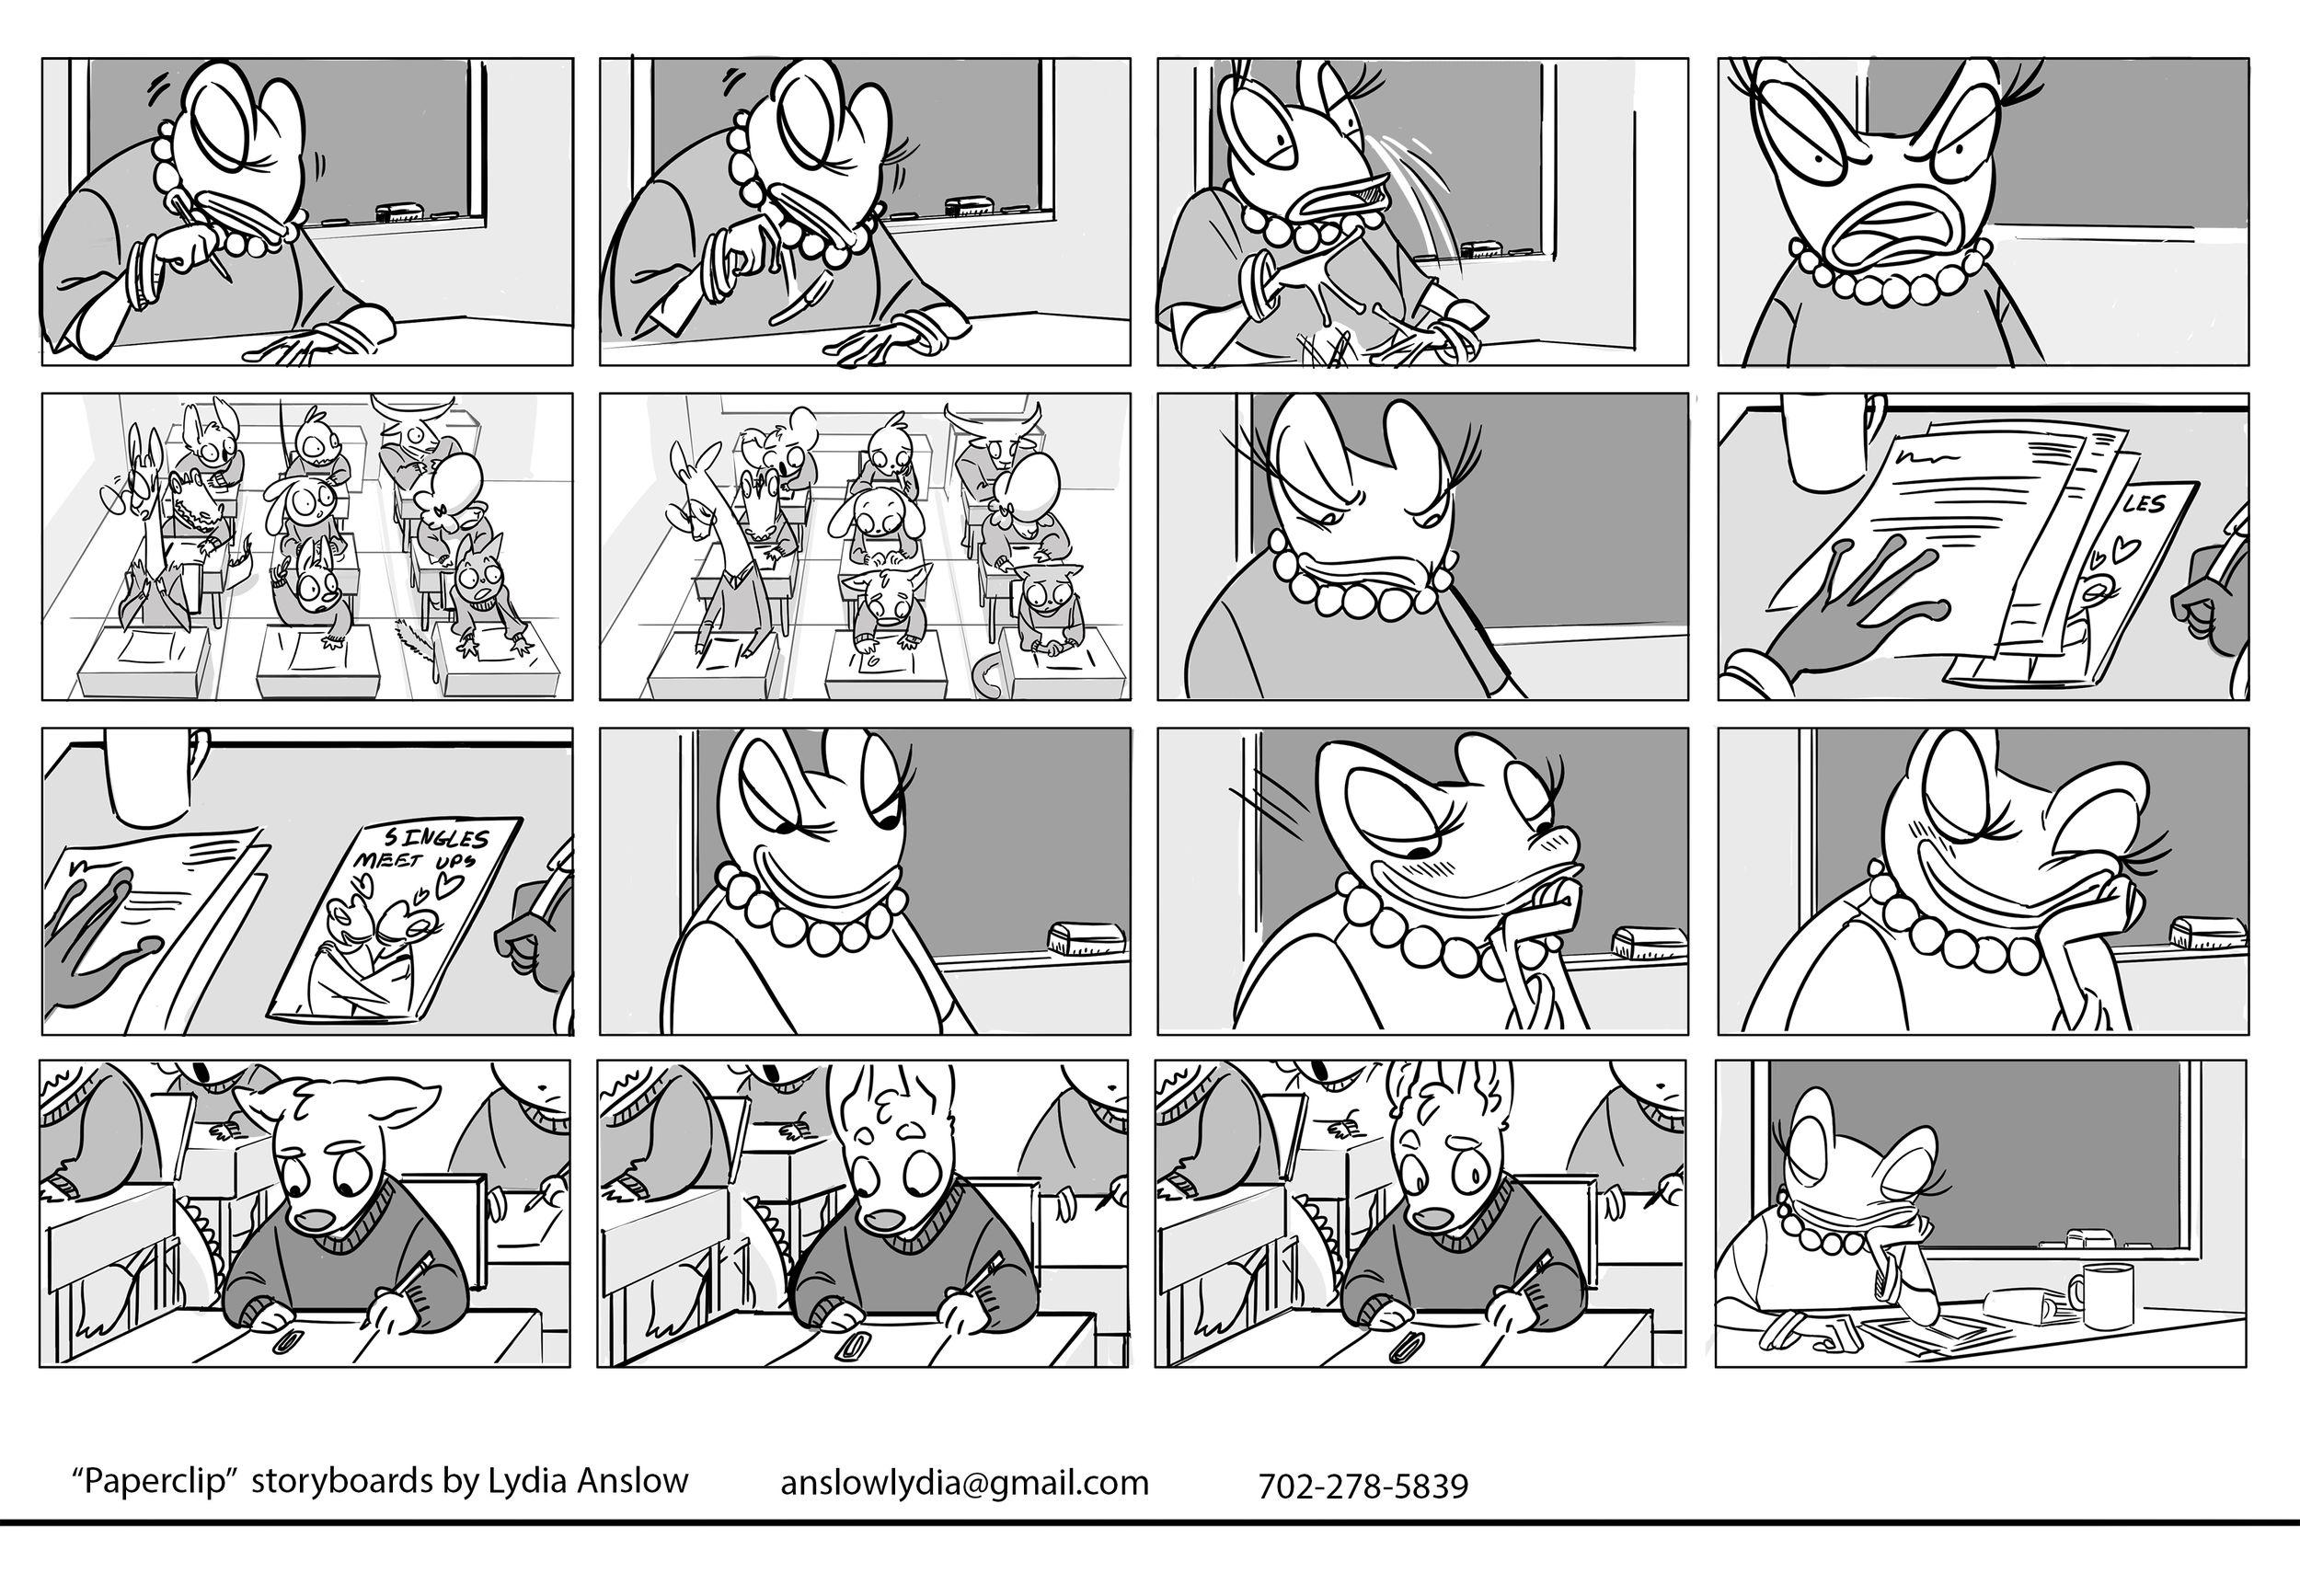 Paperclip_Storyboards_revised_3.png